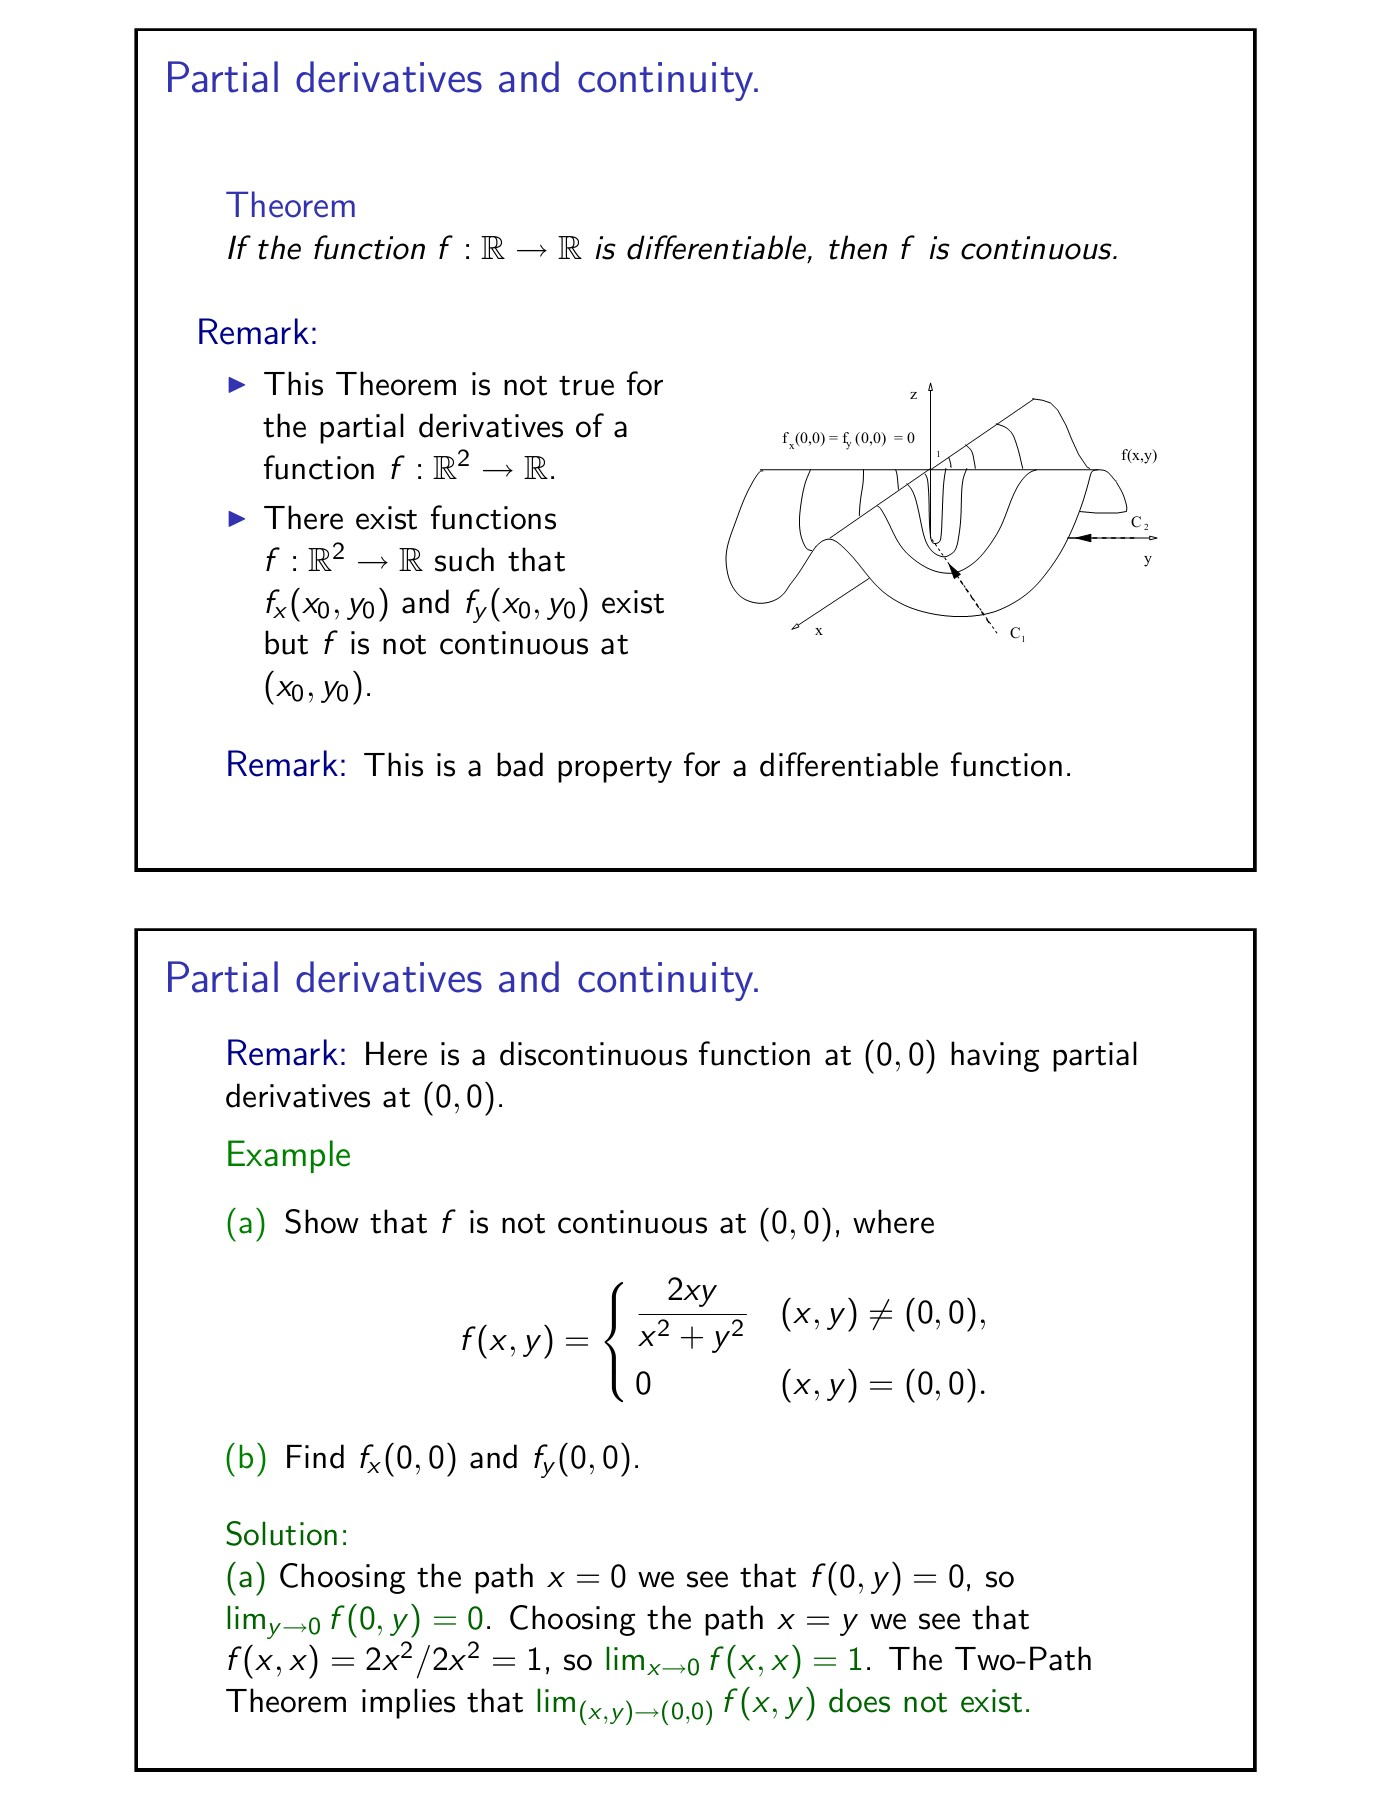 Partial Derivatives And Differentiability Sect 14 3 Pages 1 20 Text Version Anyflip Graph functions, plot points, visualize algebraic equations, add sliders, animate graphs, and more. anyflip